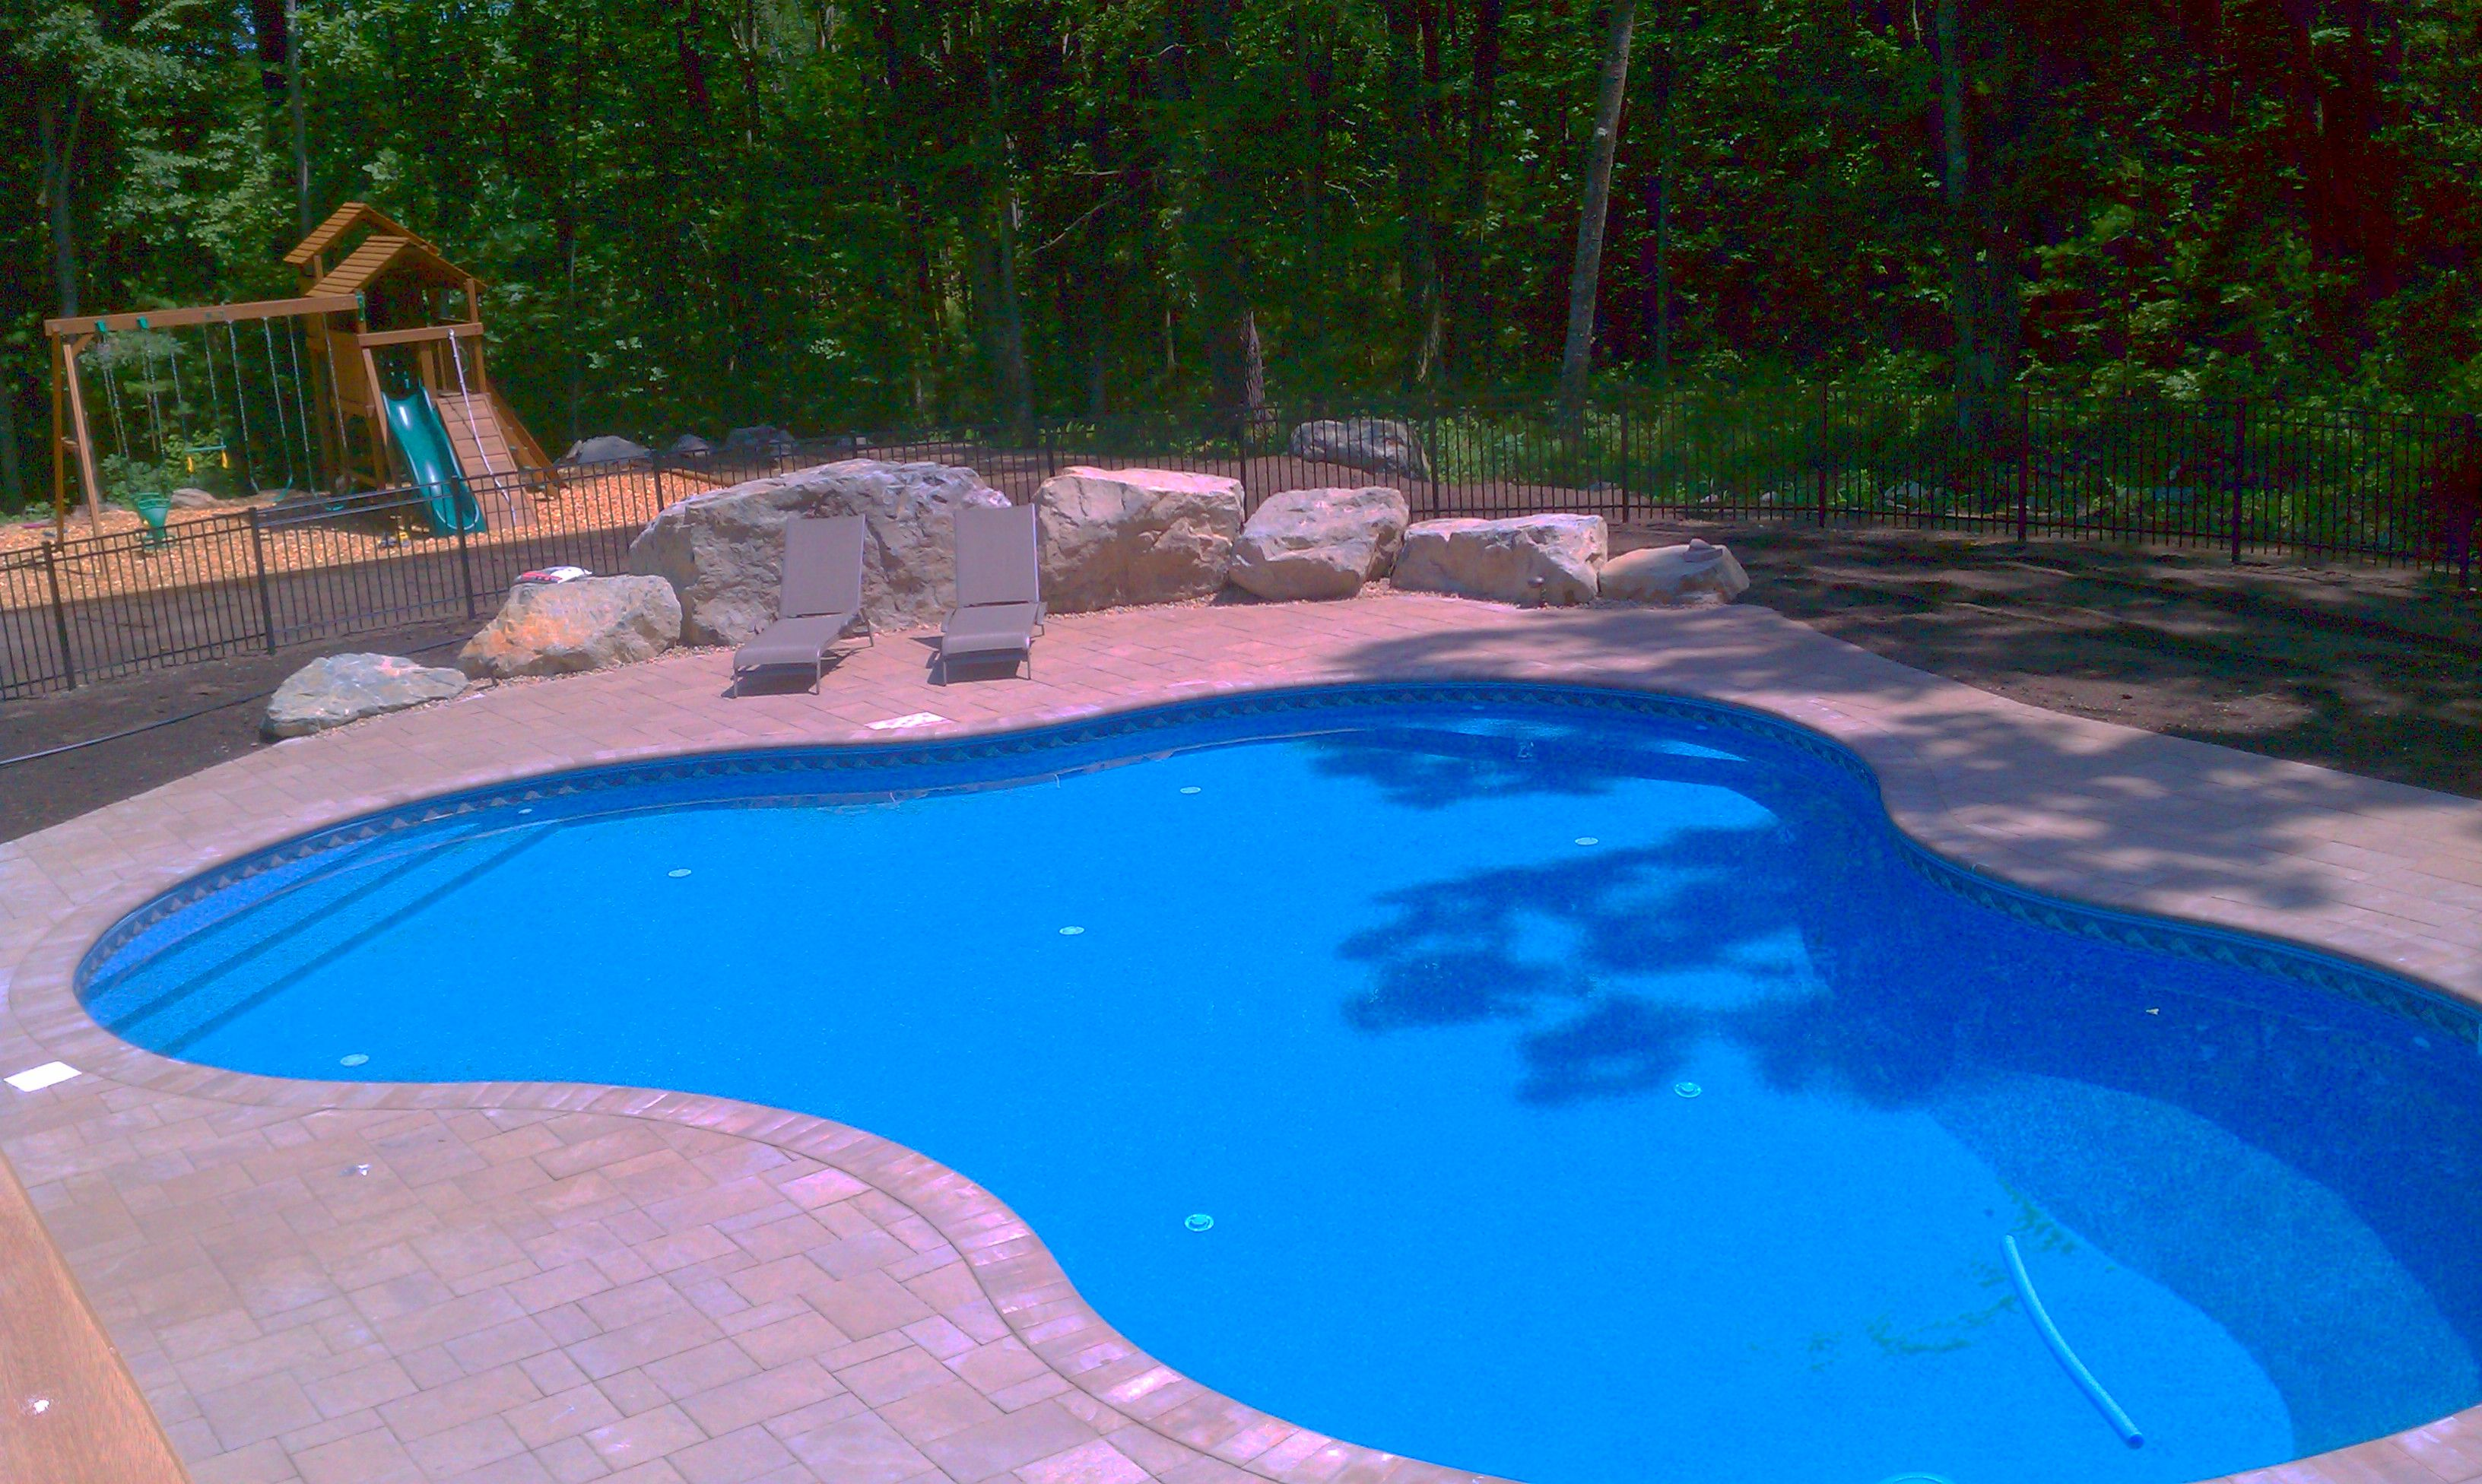 The Lagoon Pool Design Is Our Most Popular Pool Especially Those